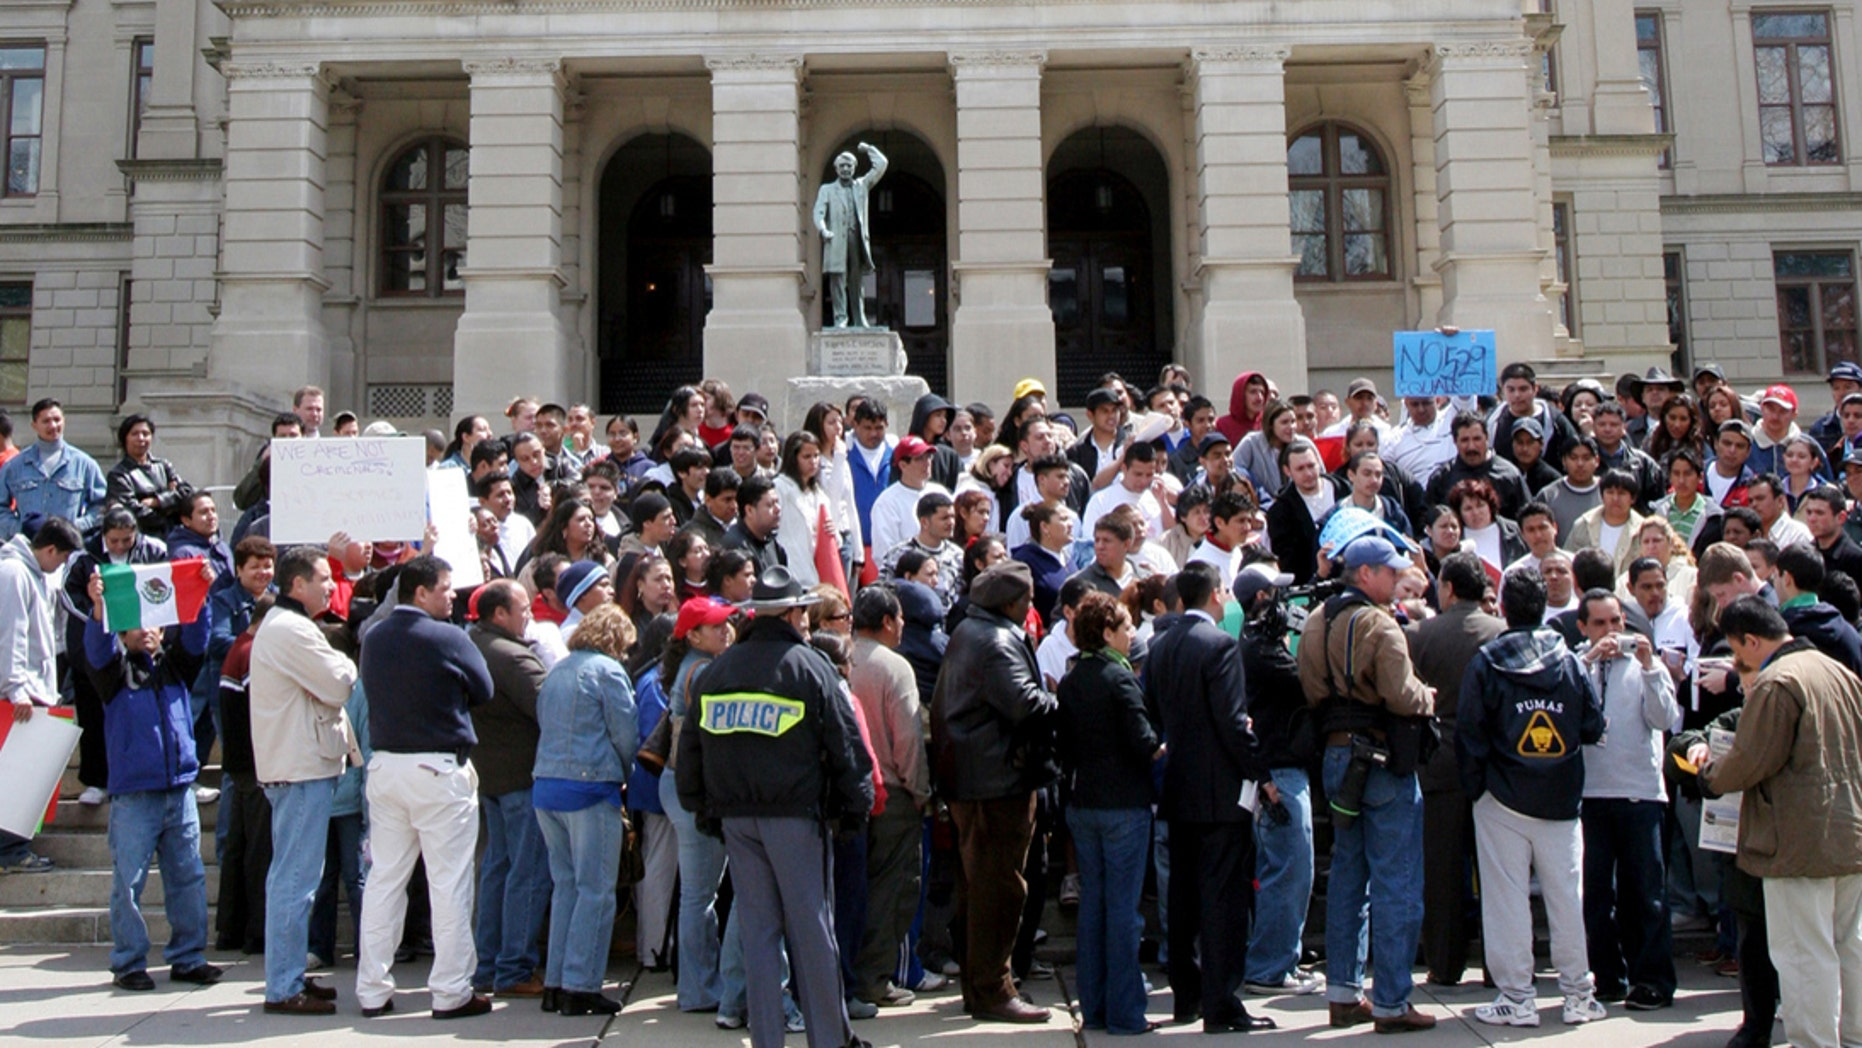 State legislatures across the country considered a record number of proposals dealing with immigration, particularly undocumented immigrants. The proposals sparked numerous protests around the country, such as the one above, in Georgia, which passed a law aimed at cracking down on undocumented immigrants.